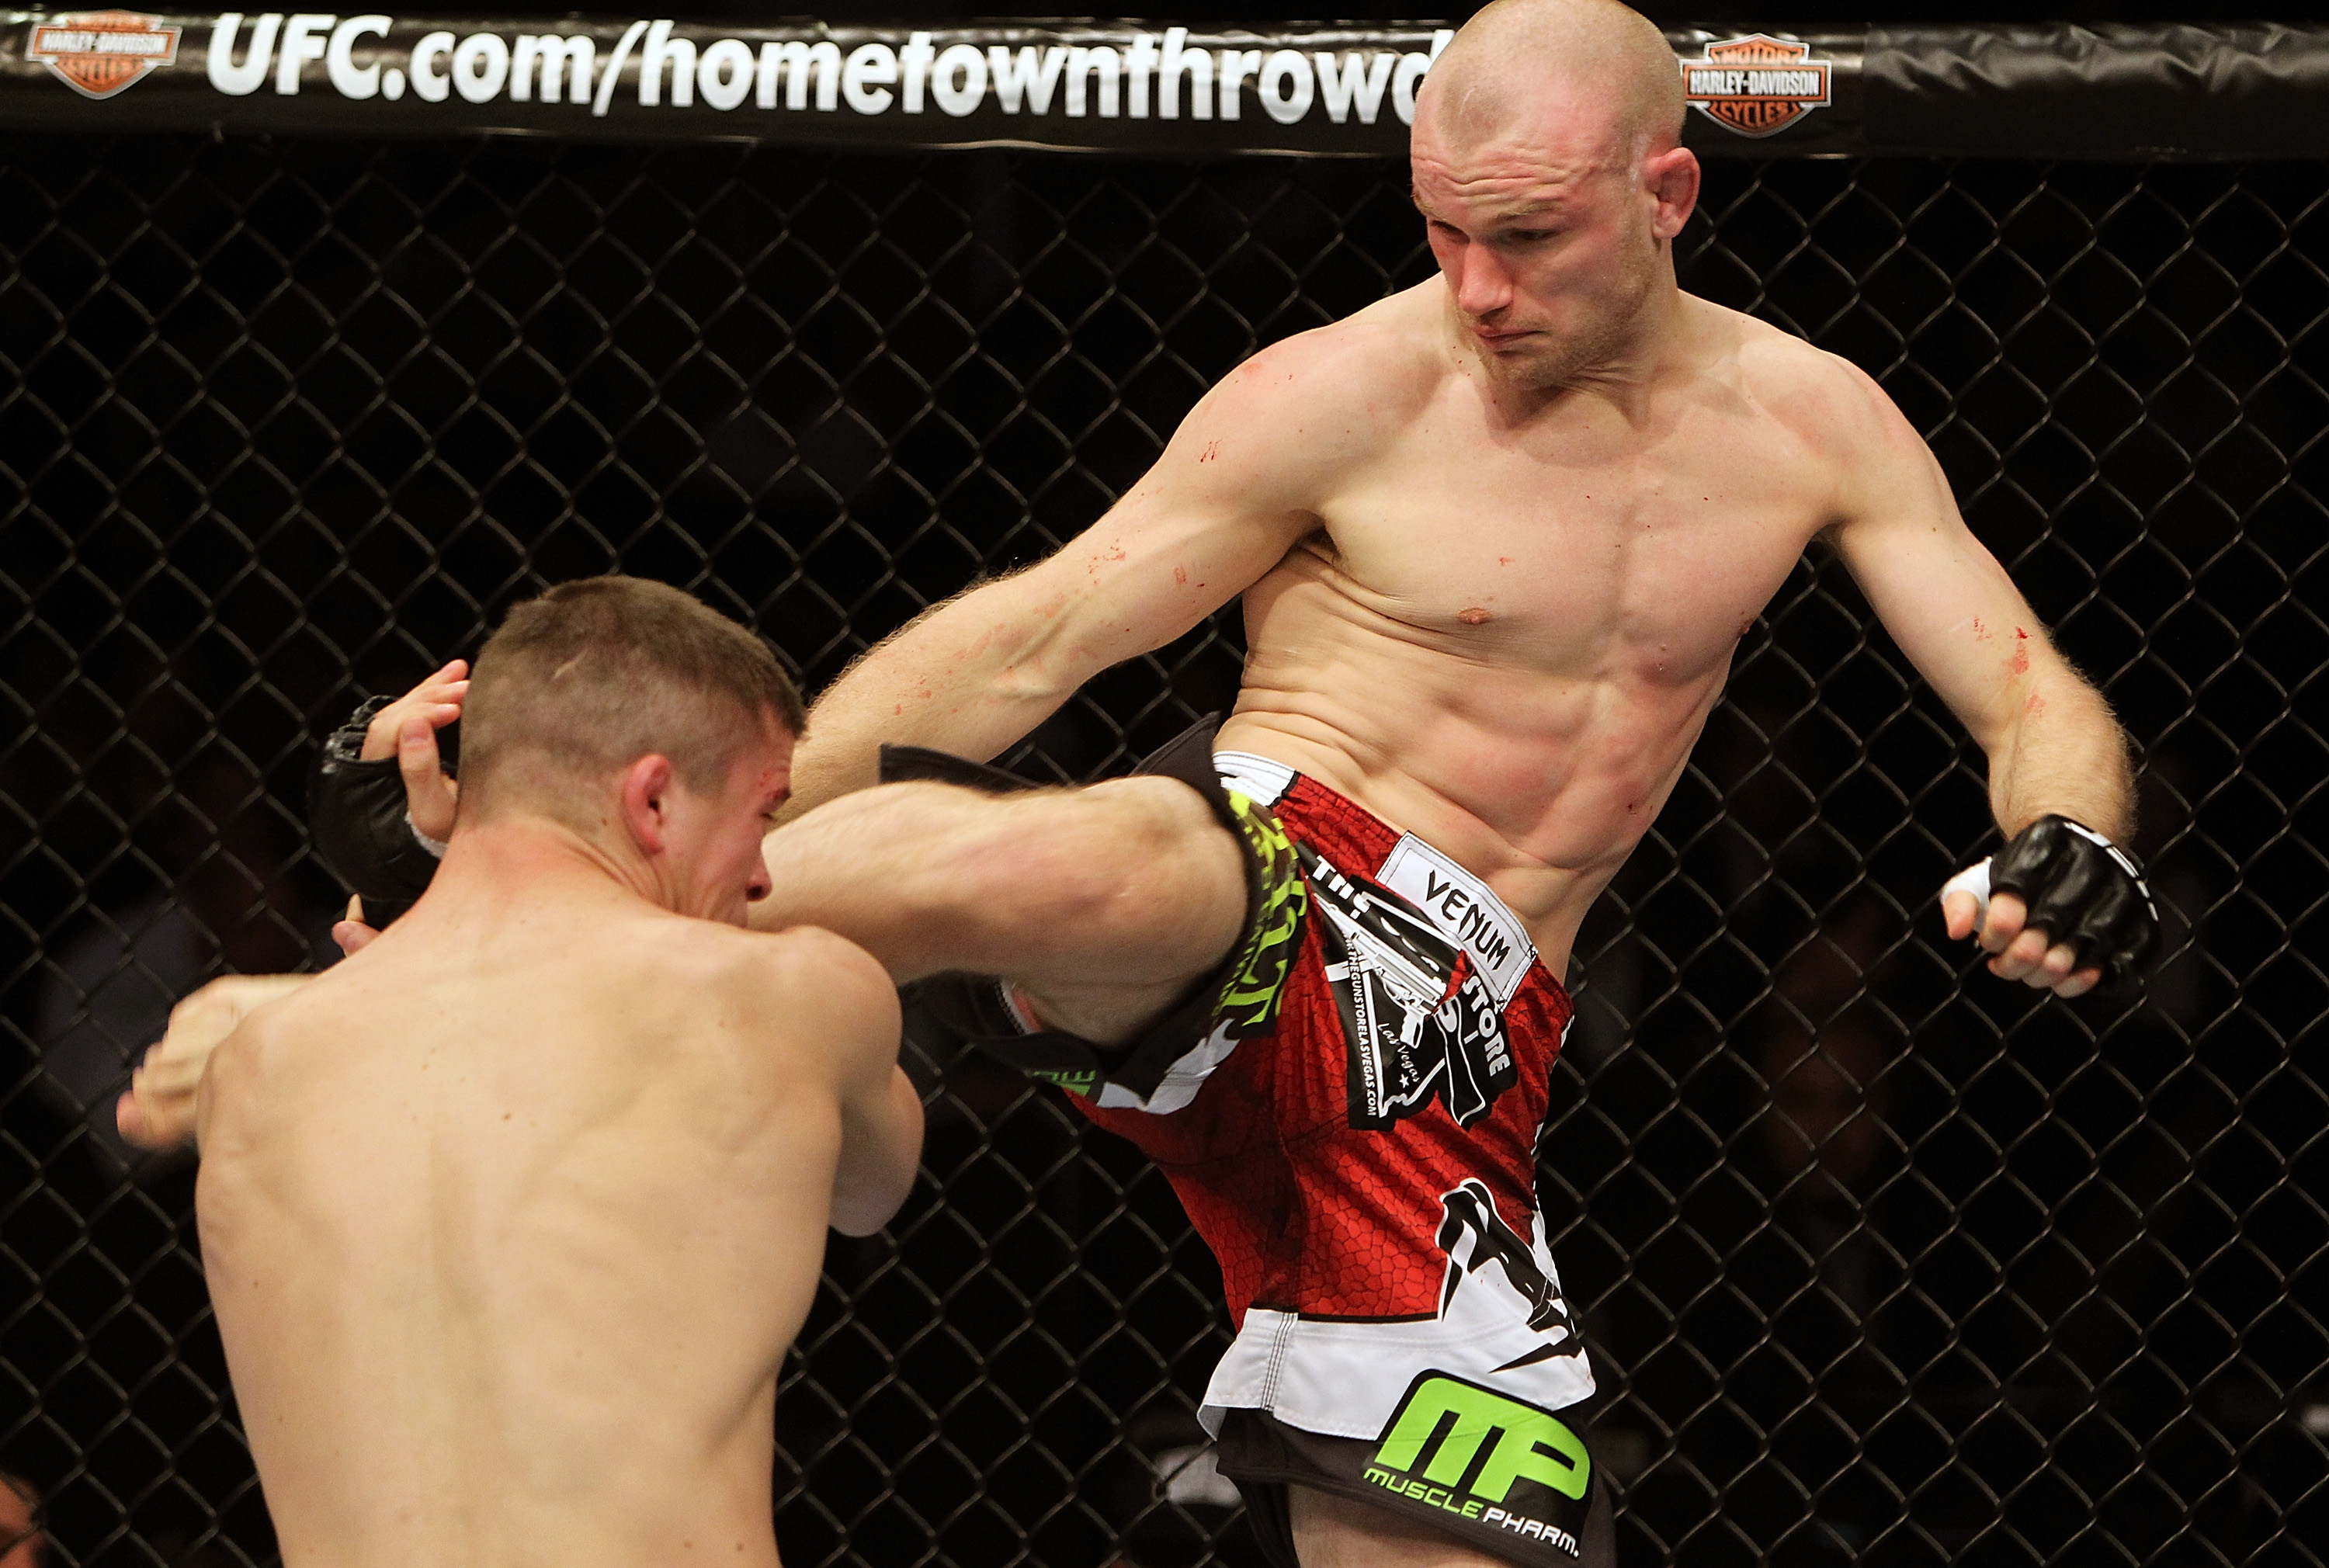 SAN JOSE, CA - NOVEMBER 19:  (R-L) Martin Kampmann kicks Rick Story during an UFC Welterweight bout at the HP Pavillion on November 19, 2011 in San Jose, California.  (Photo by Josh Hedges/Zuffa LLC/Zuffa LLC via Getty Images)